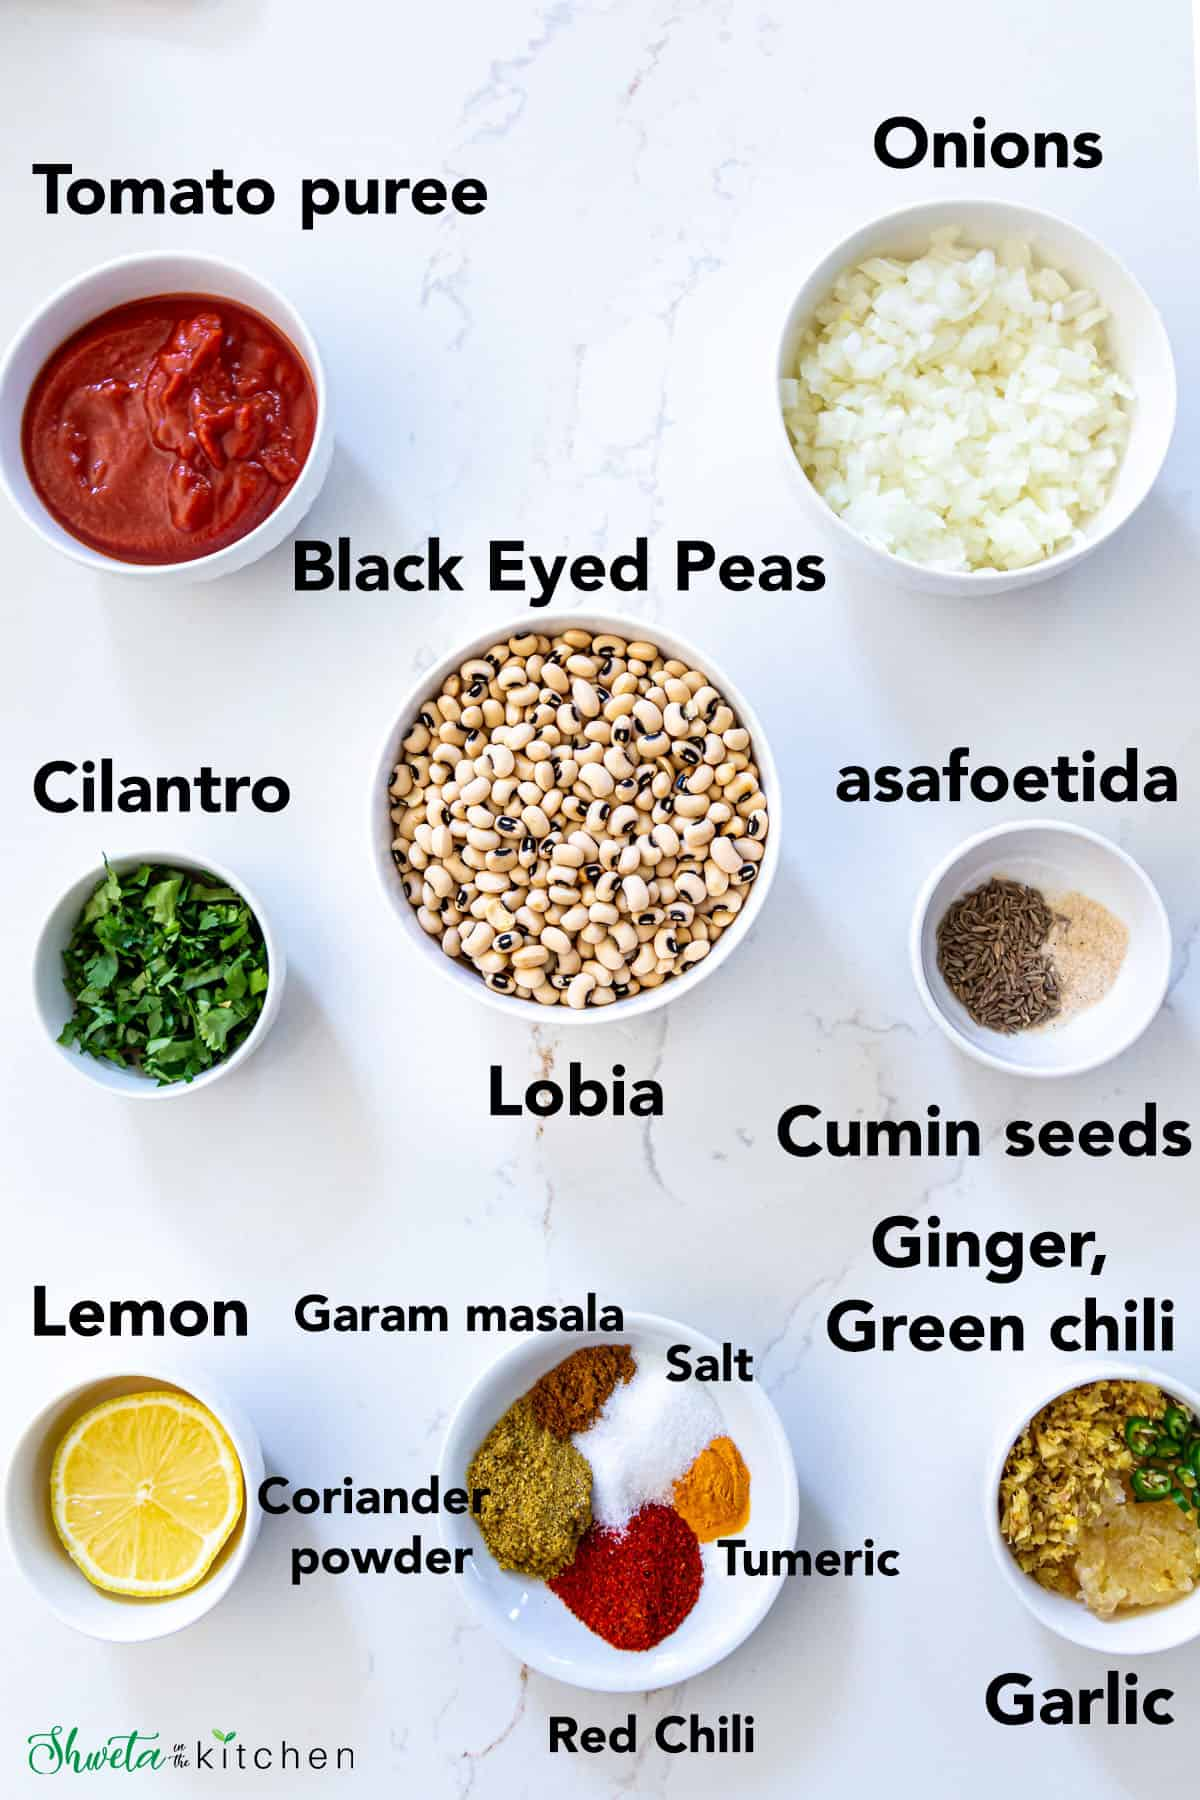 Ingredients for Lobia (black eyed peas curry) in bowls on white surface